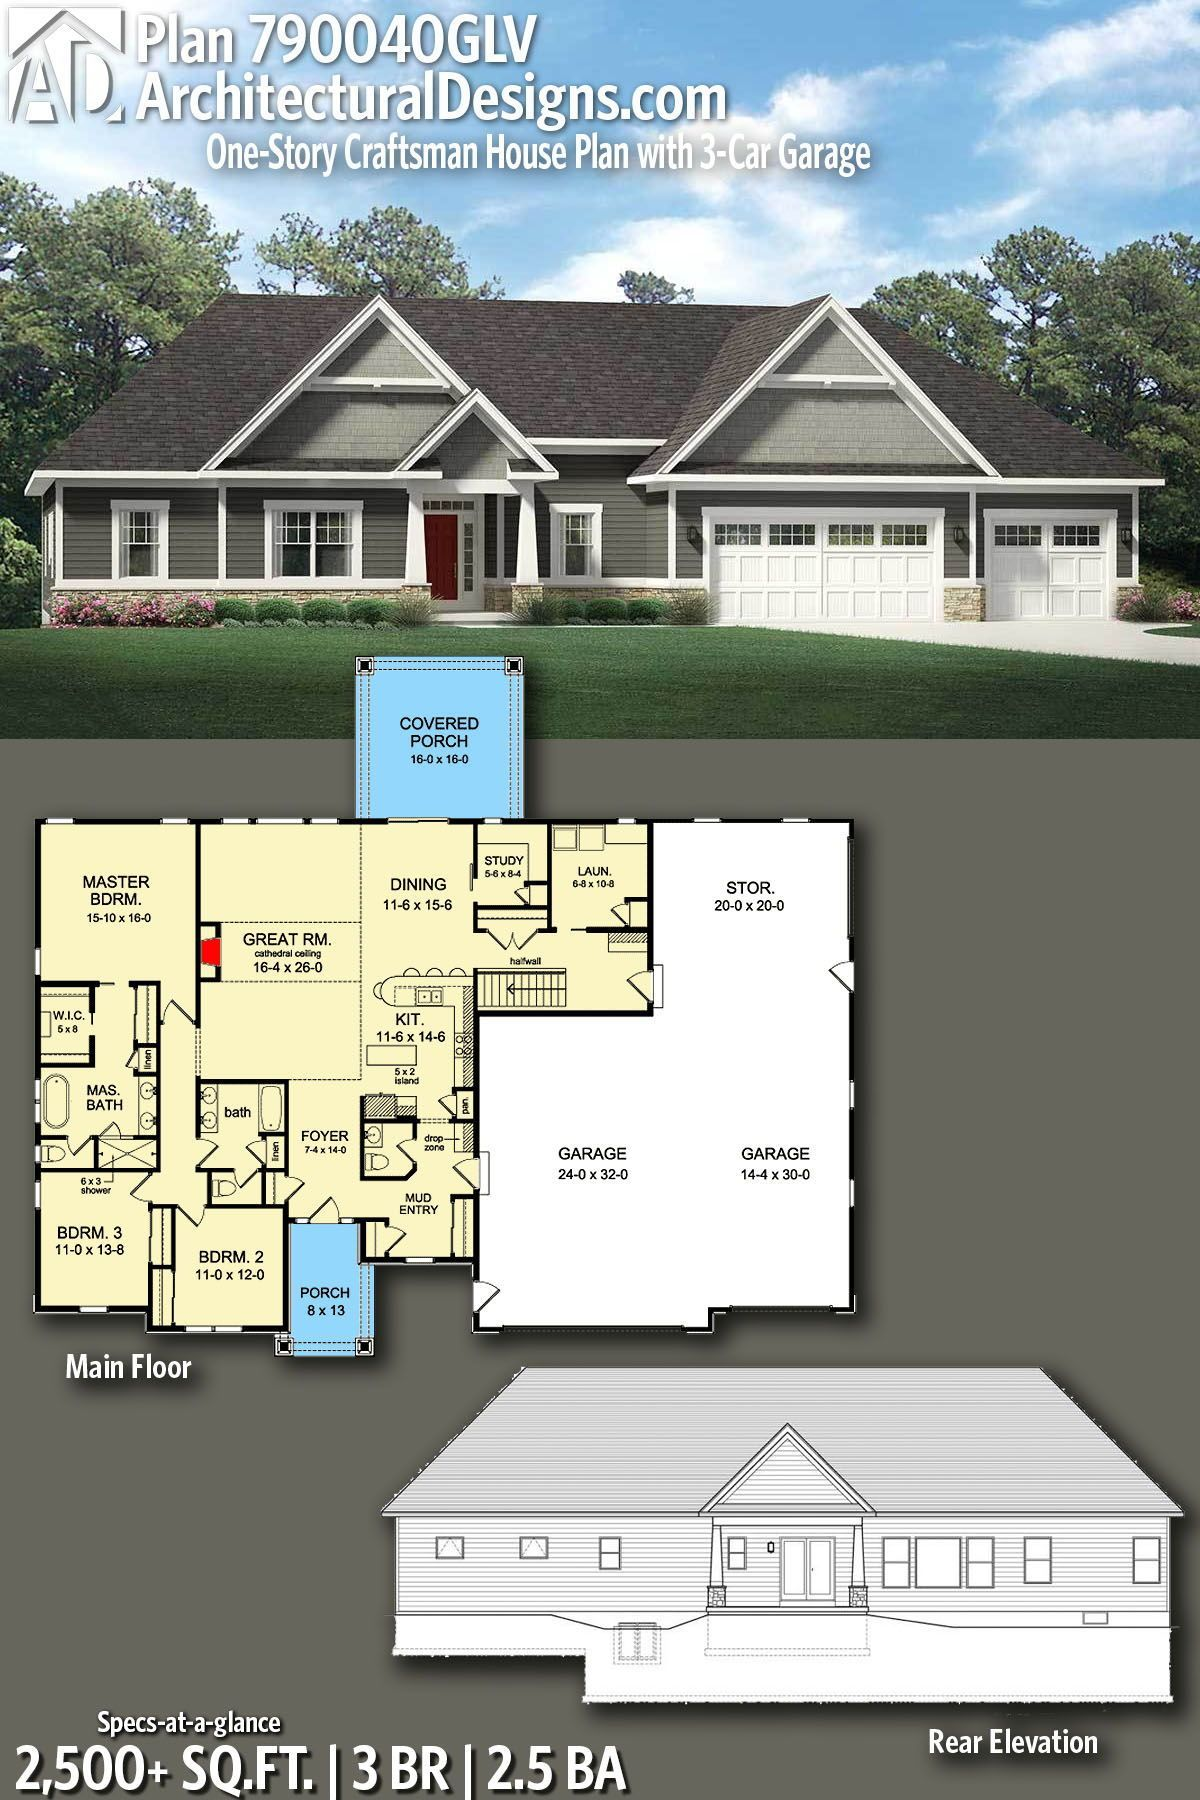 Ranch House Plans With Basement 3 Car Garage In 2020 Craftsman House Plans Craftsman Style House Plans Ranch House Plans